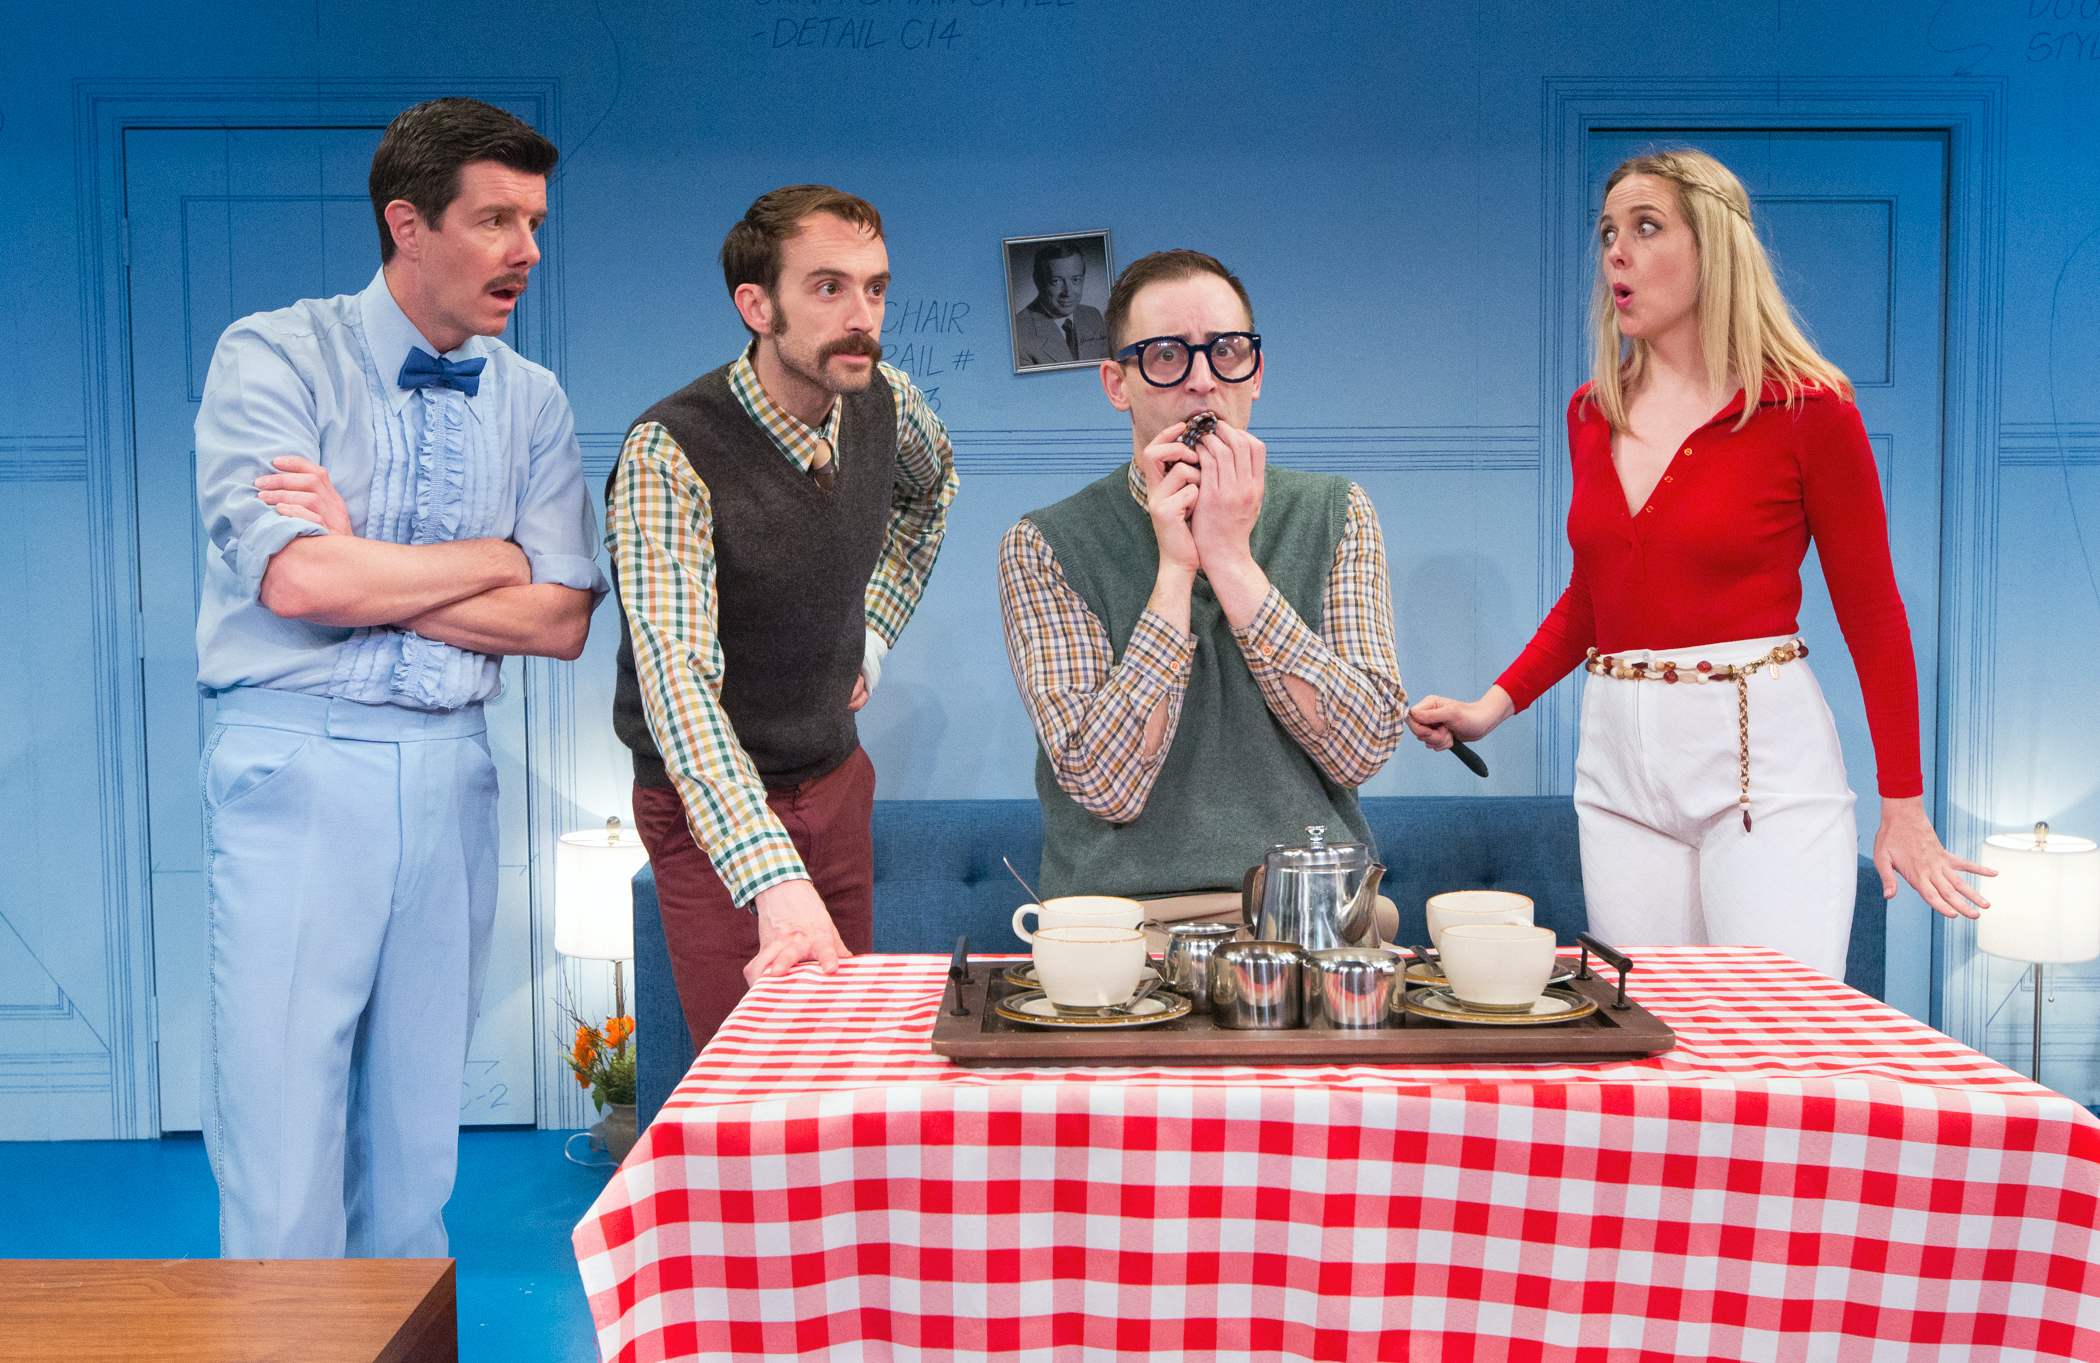 THE NERD at Bucks County Playhouse. Photo by Mark Garvin.